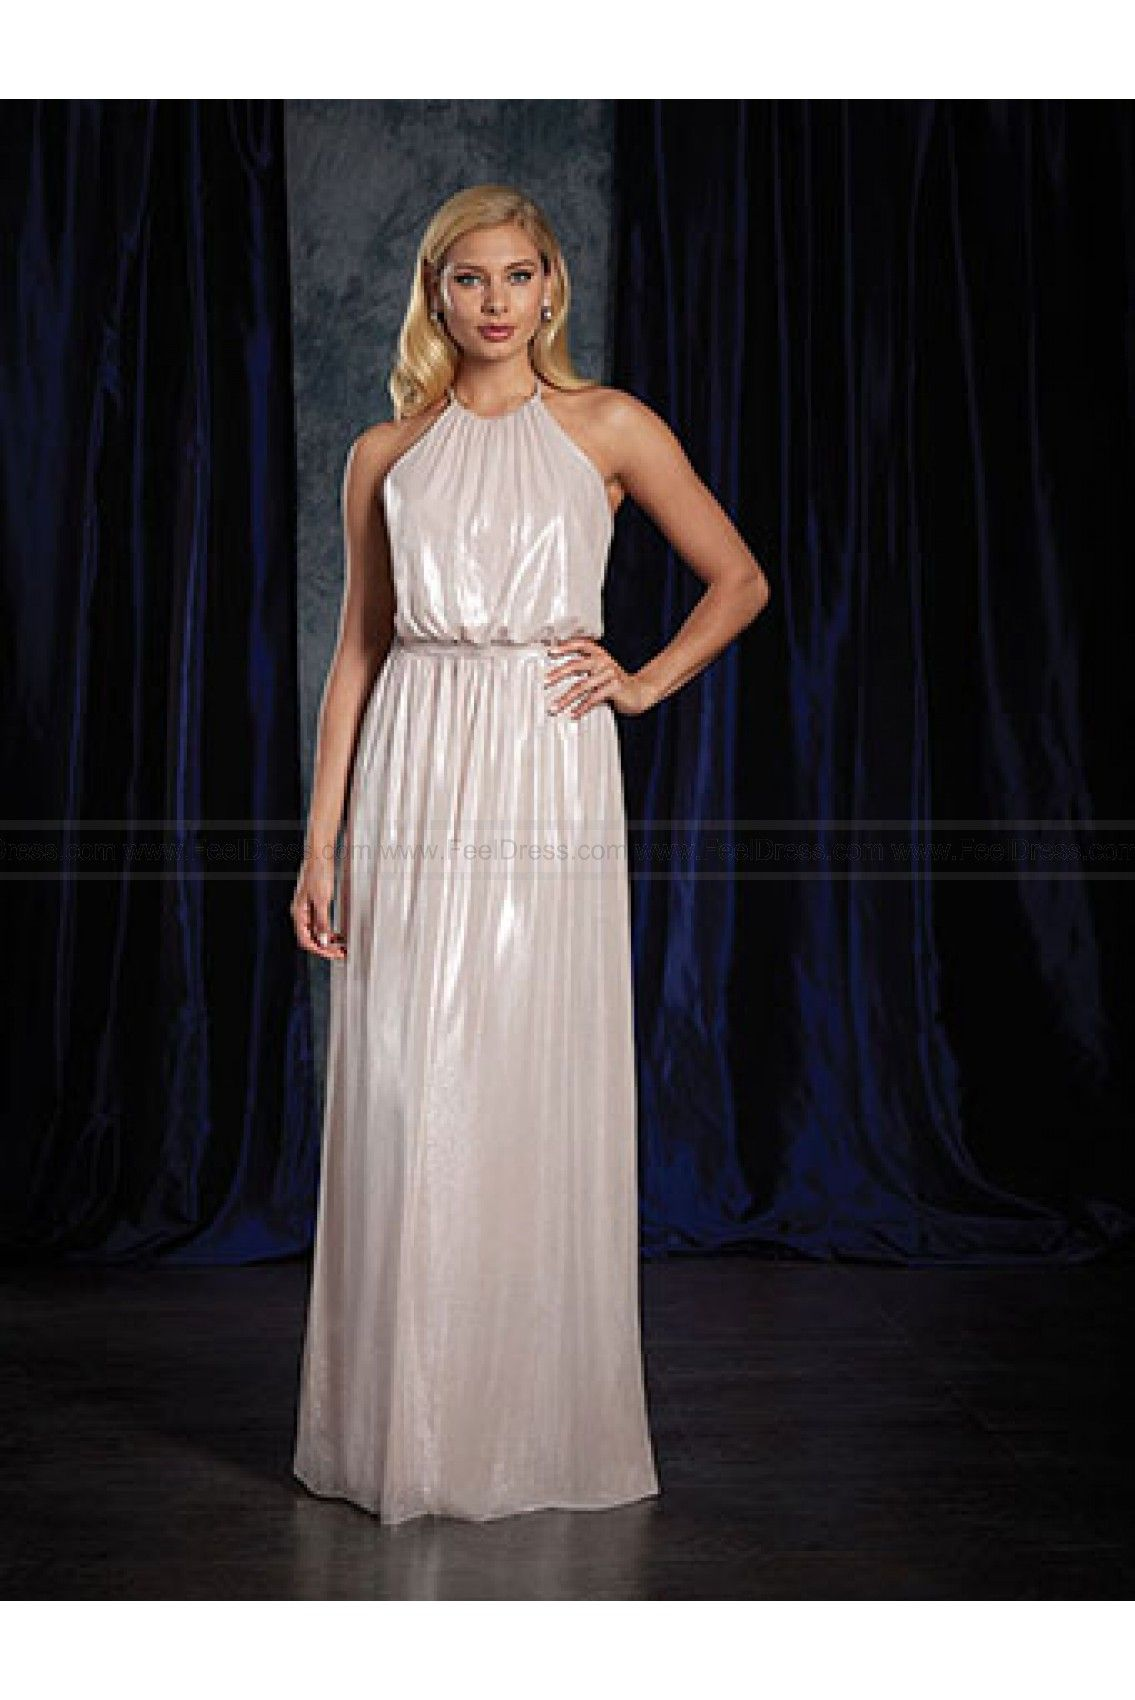 Alfred angelo bridesmaid dress style 8122l new alfred angelo alfred angelo bridesmaid dress style 8122l new ombrellifo Image collections